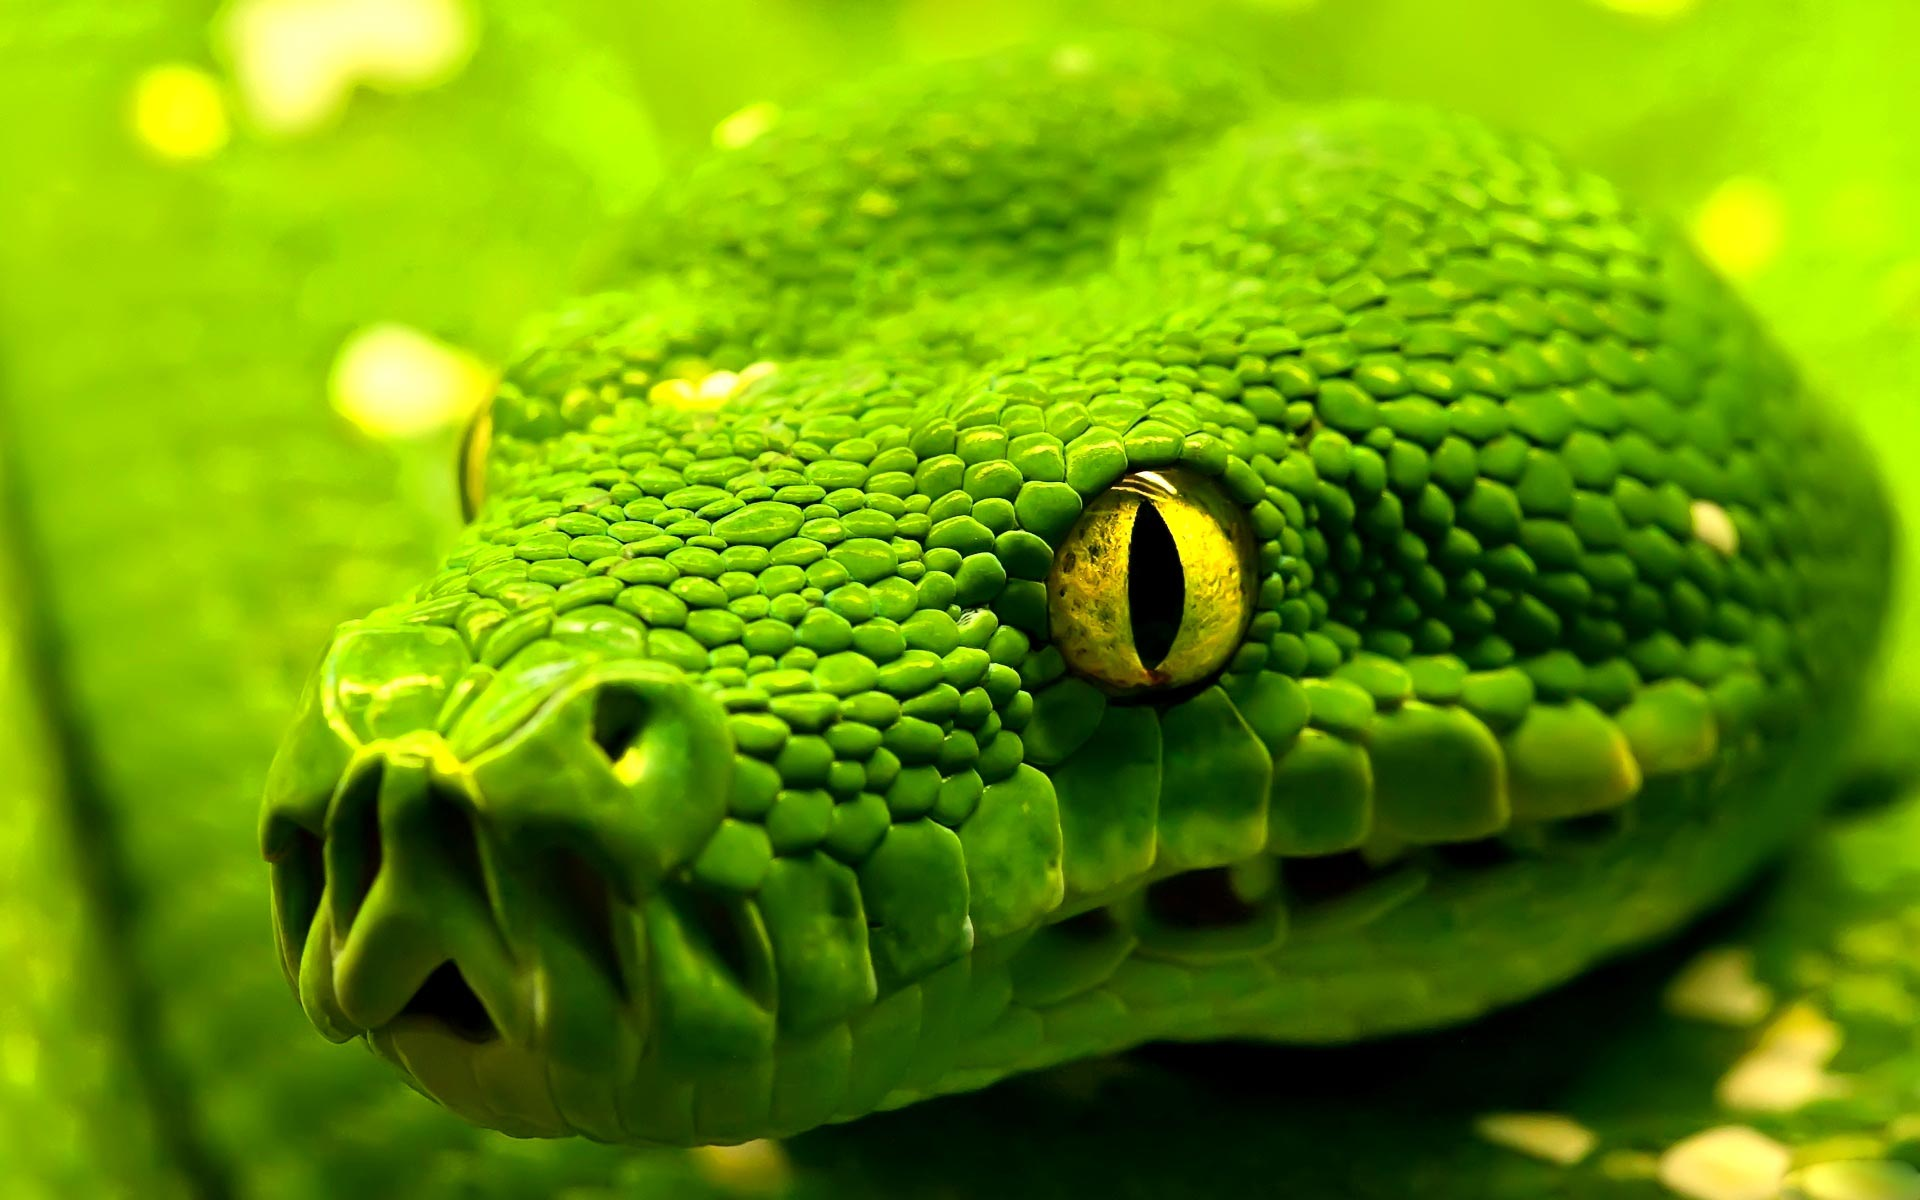 beautiful snake wallpaper 29854